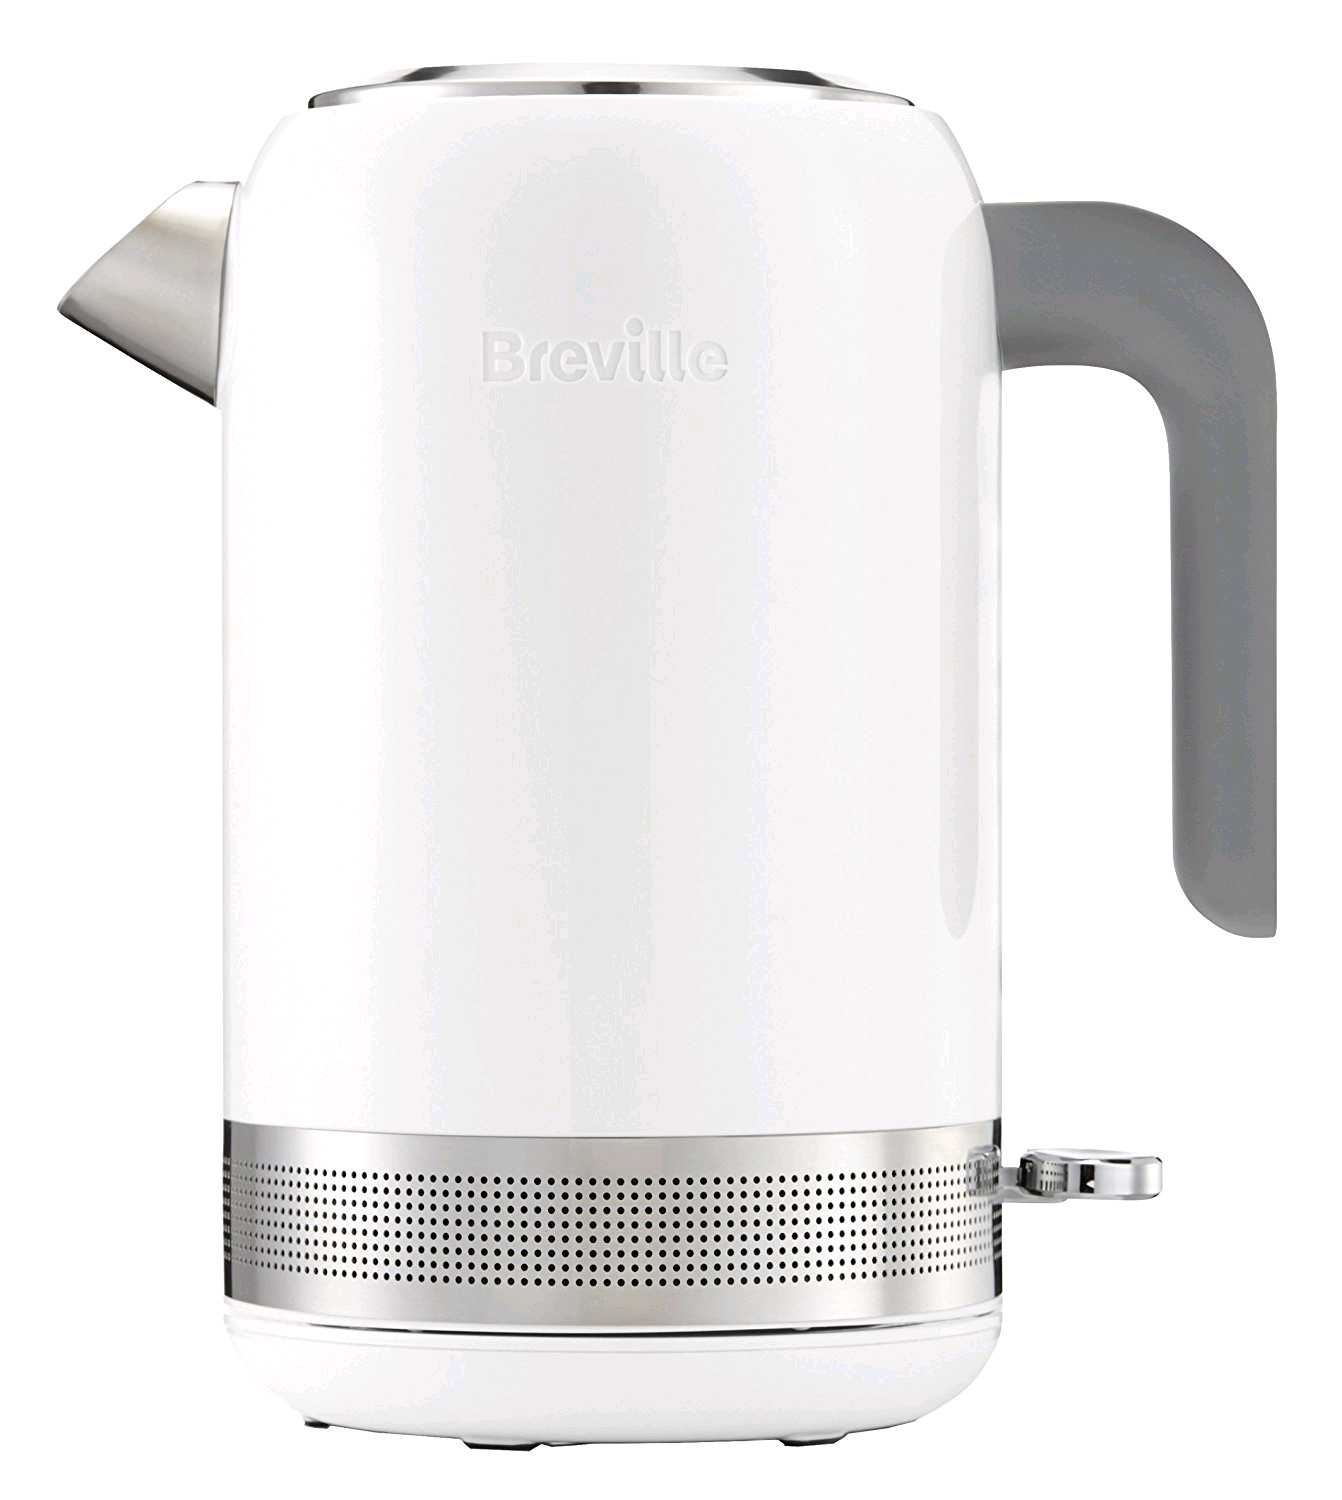 Breville VKJ946 High Gloss Kettle, 1.7 L - White [Energy Class A]